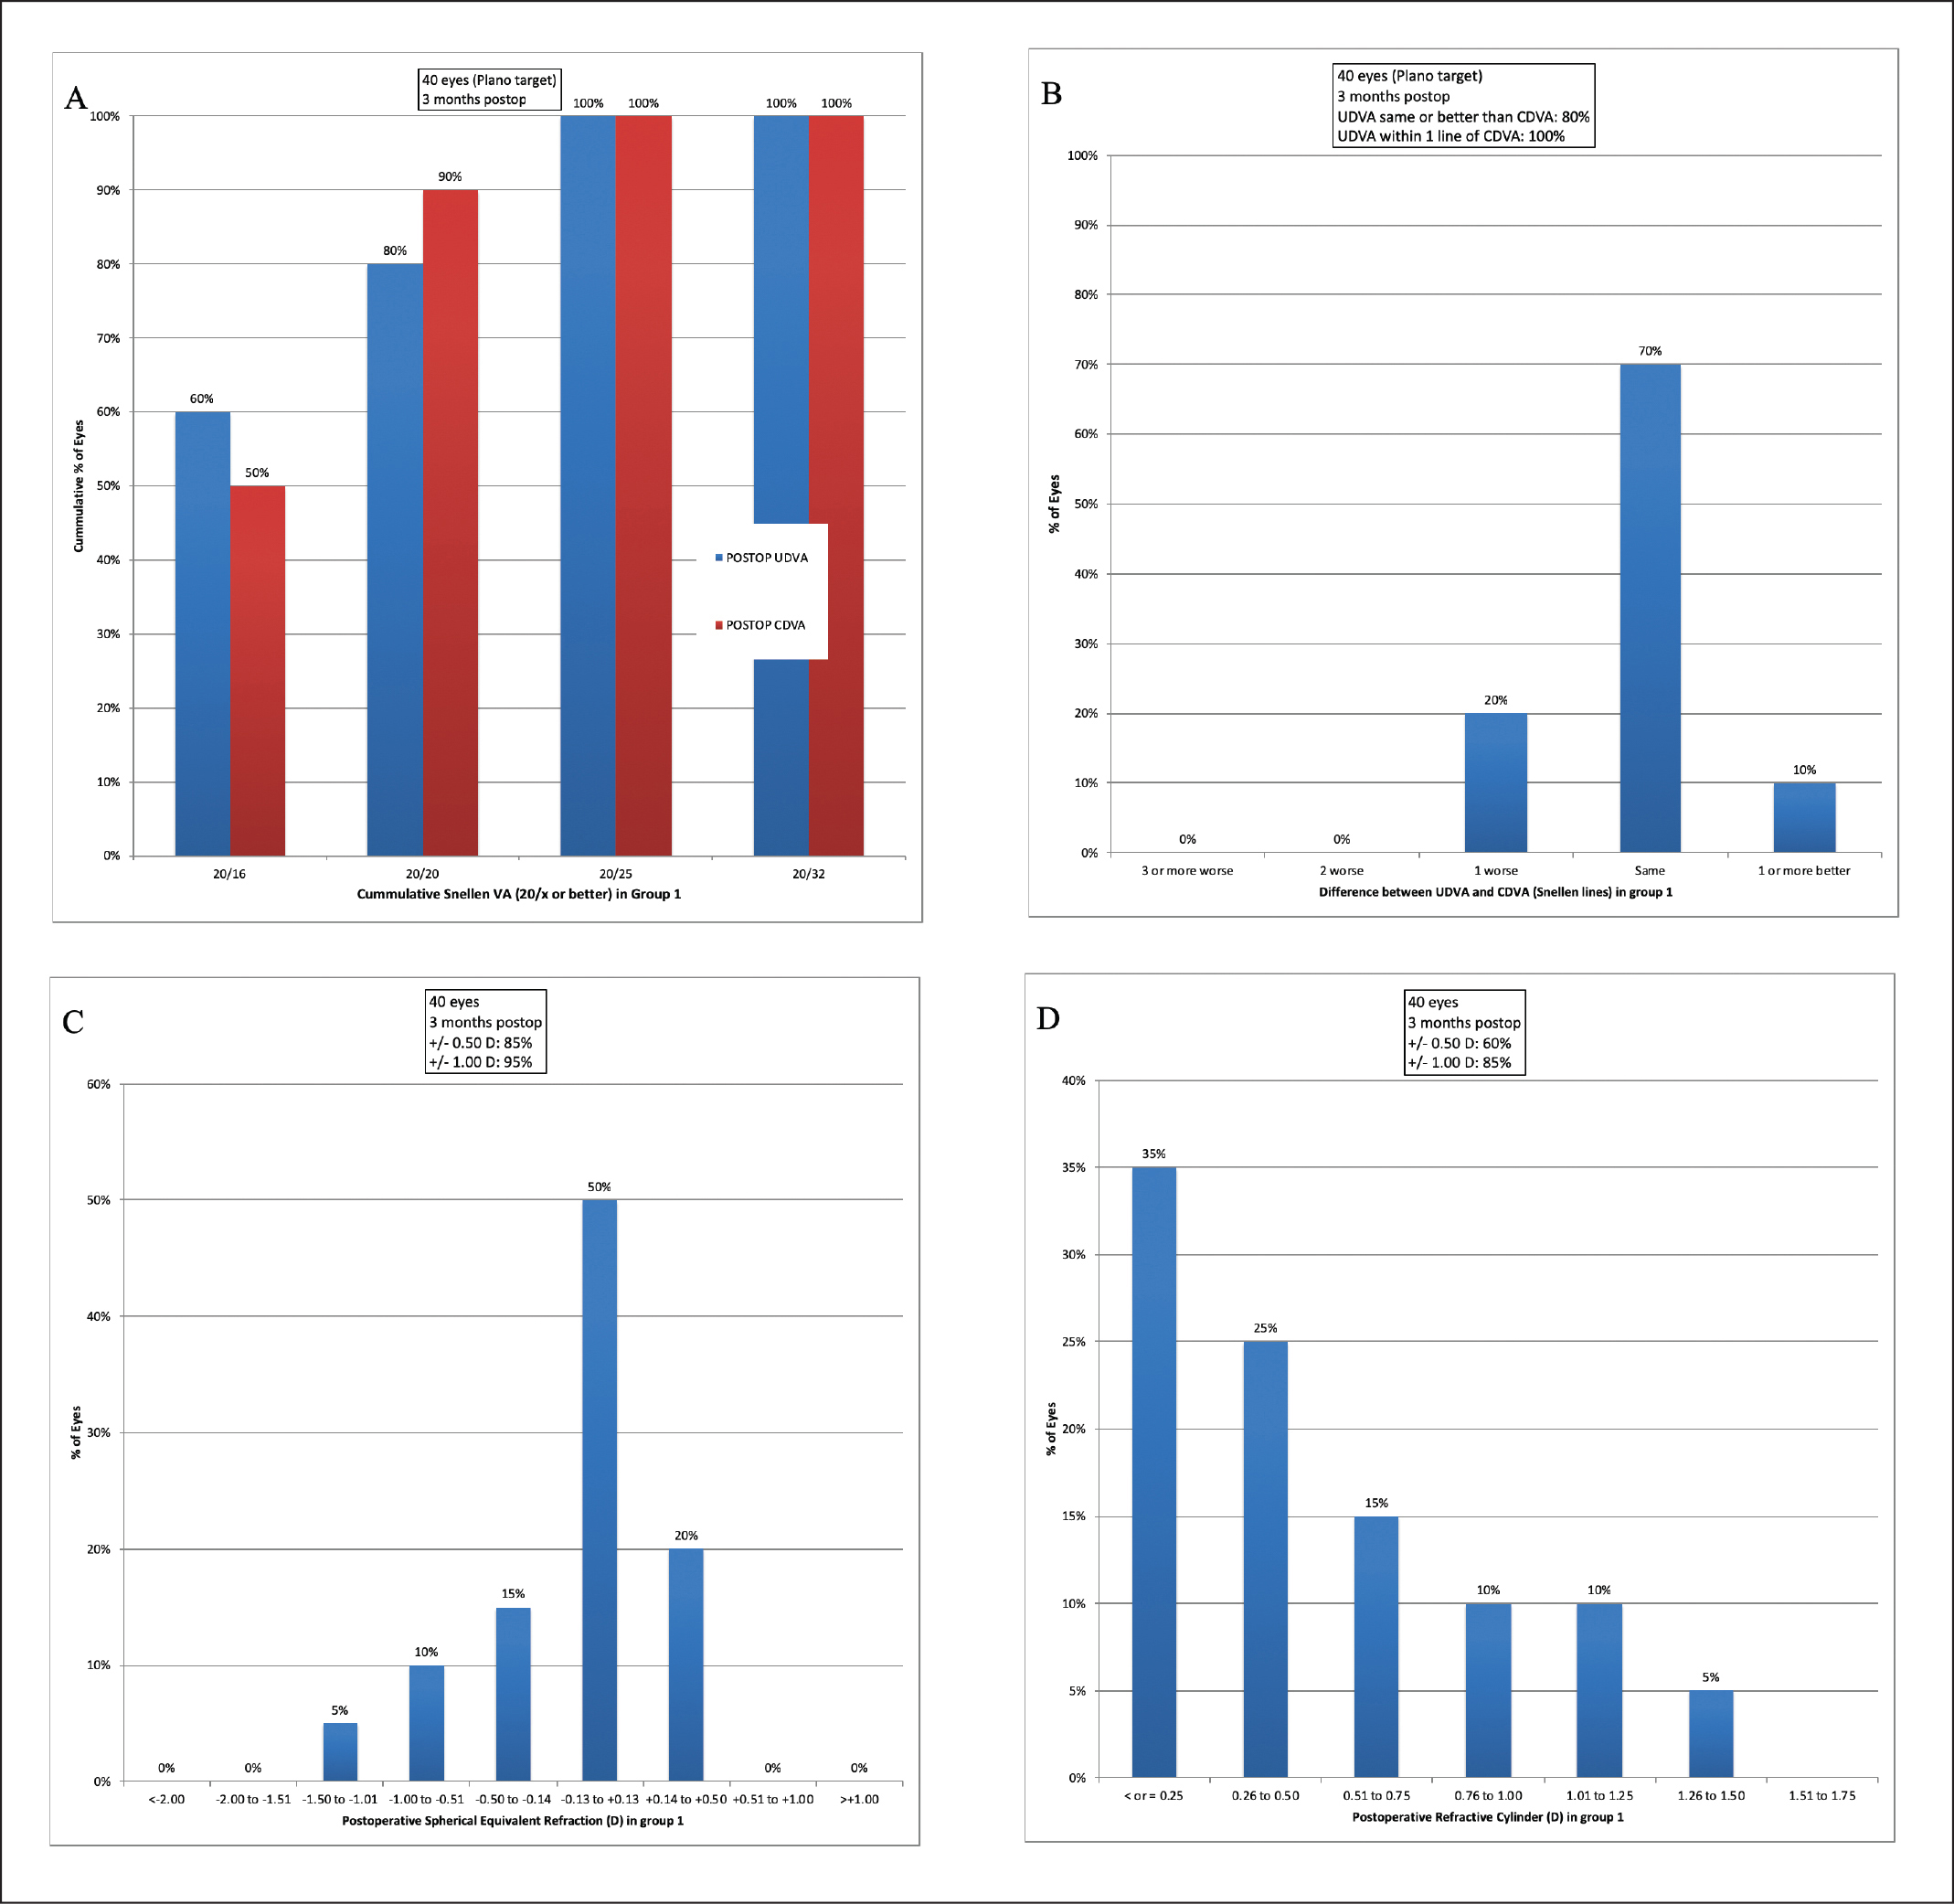 Standard graphs for lens-based refractive surgery of the extended depth of focus (EDOF) only group (binocular implantation of EDOF intraocular lens targeted emmetropia [AT LARA 829; Carl Zeiss Meditec, Jena, Germany]). UDVA = uncorrected distance visual acuity; CDVA = corrected distance visual acuity; D = diopters